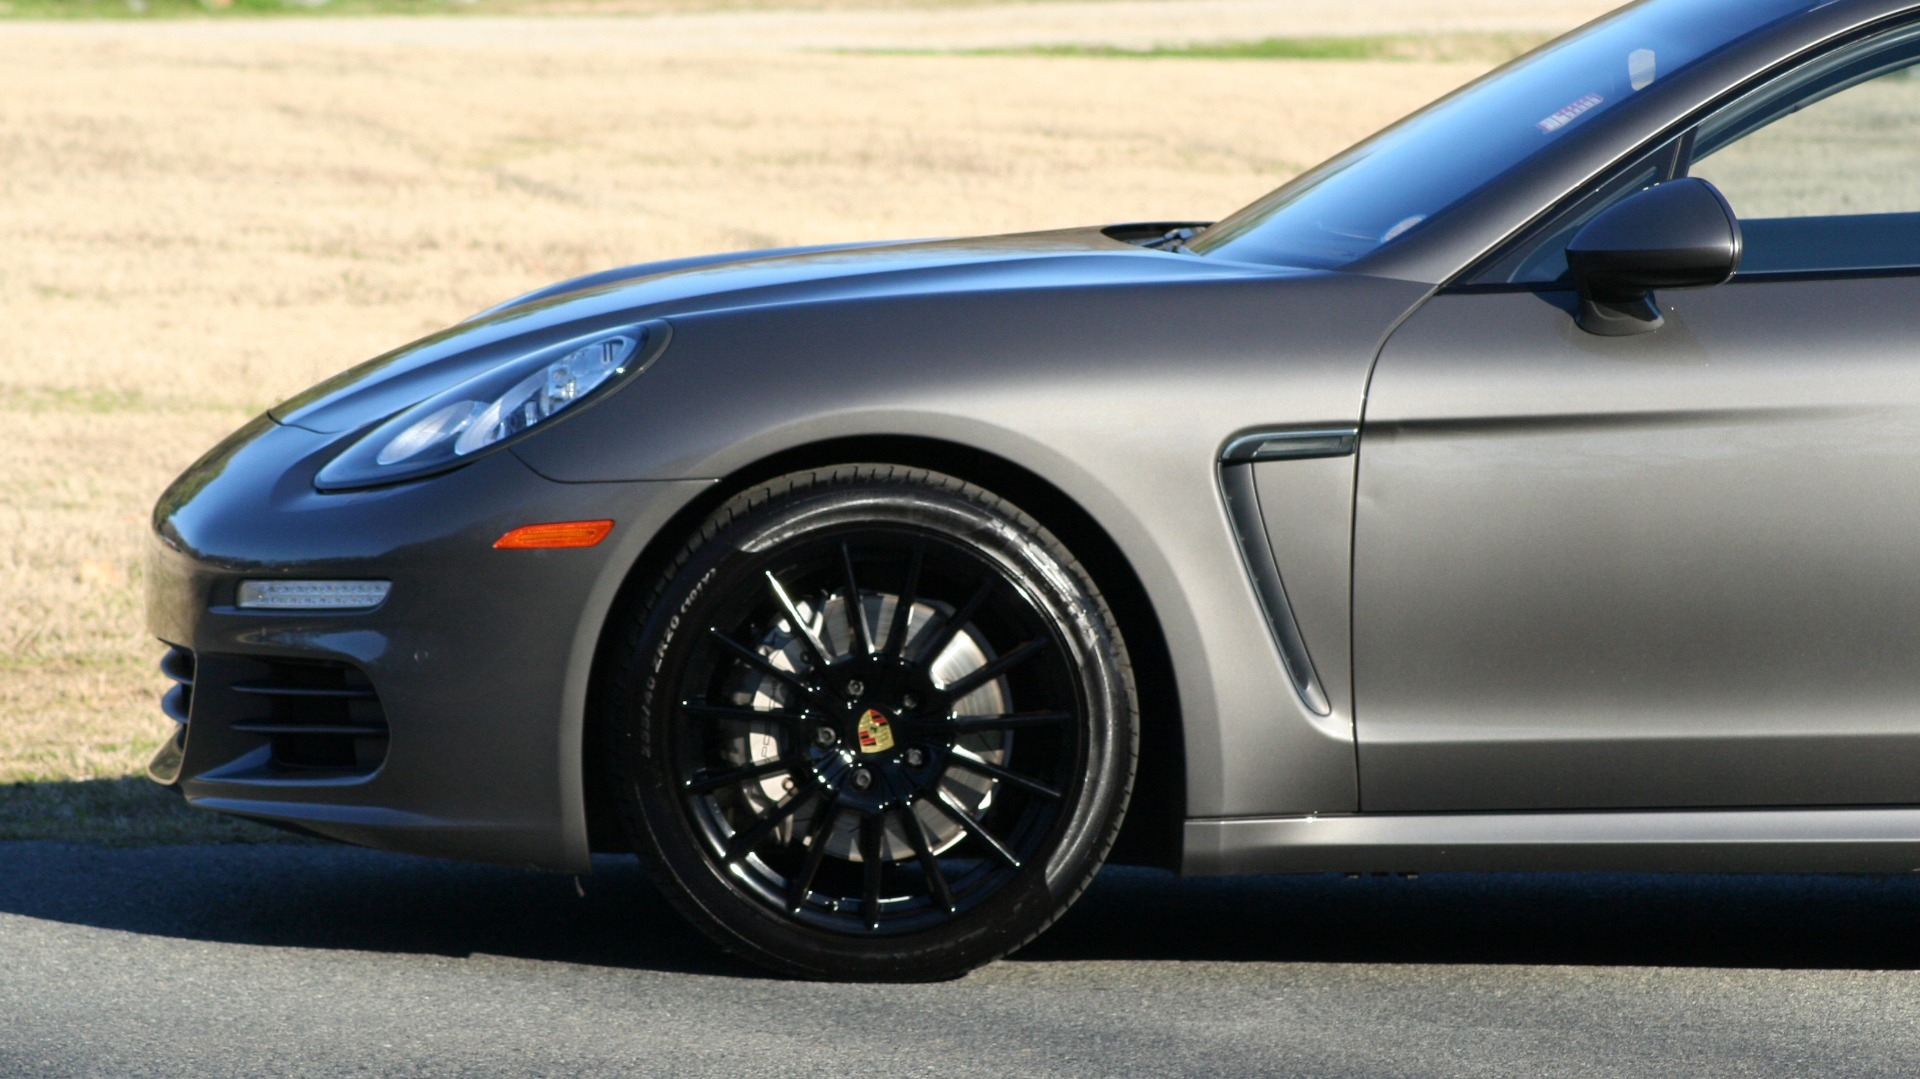 Used 2016 Porsche PANAMERA S / TURBO V6 / PDK / NAV / BOSE / SNRF / LDW / REARVIEW for sale Sold at Formula Imports in Charlotte NC 28227 4